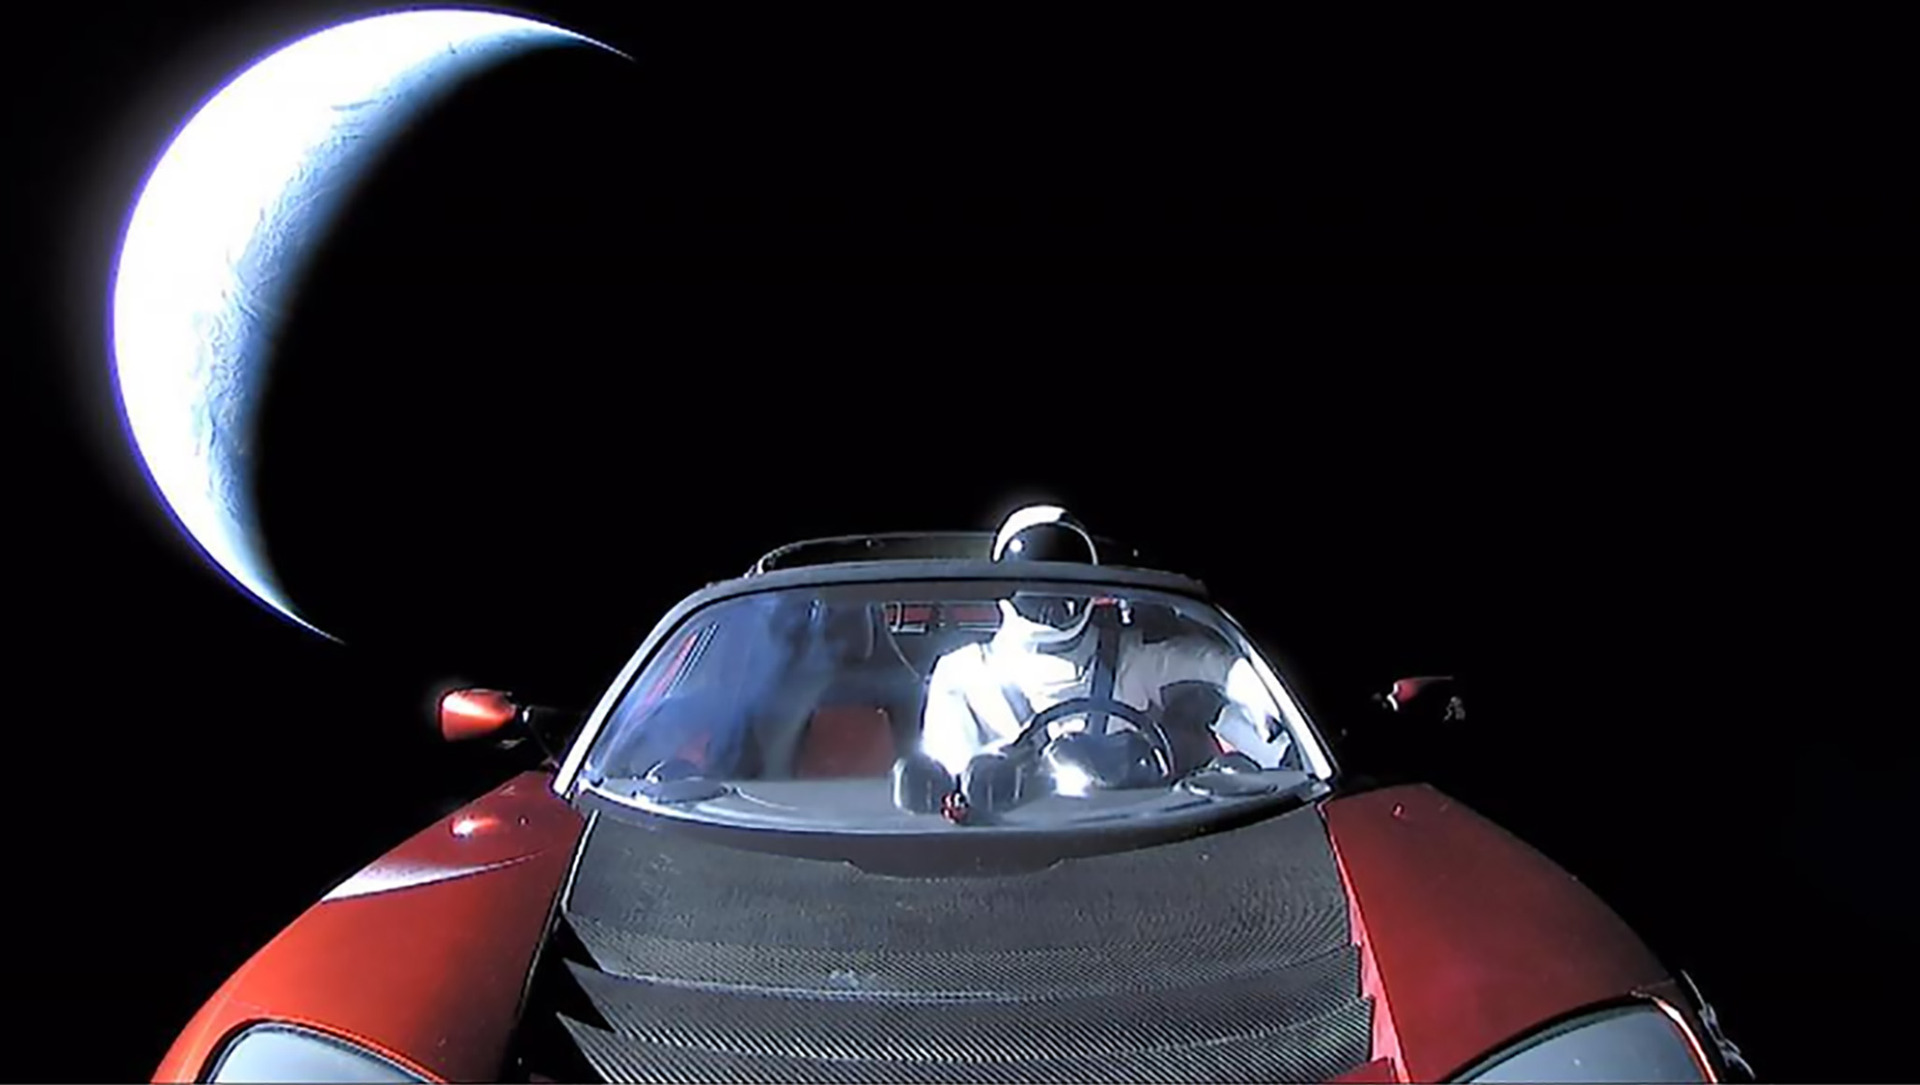 Where is Musk's Tesla Roadster now?